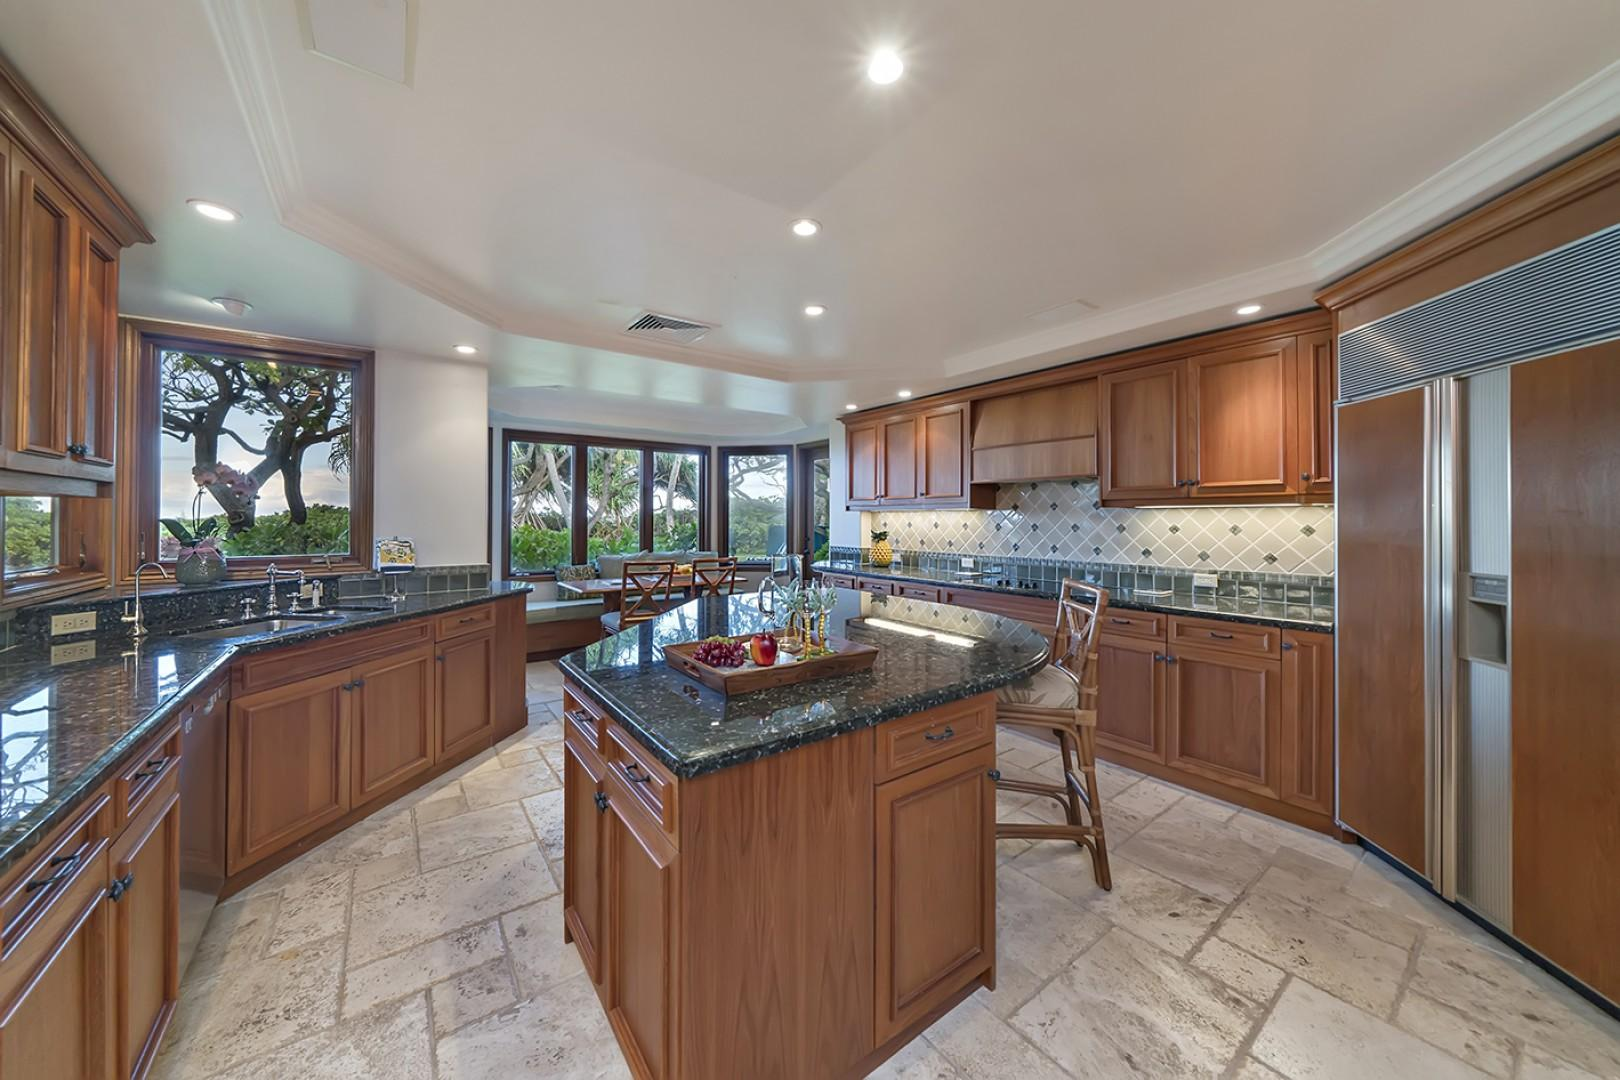 Guest house: Kitchen fully equipped